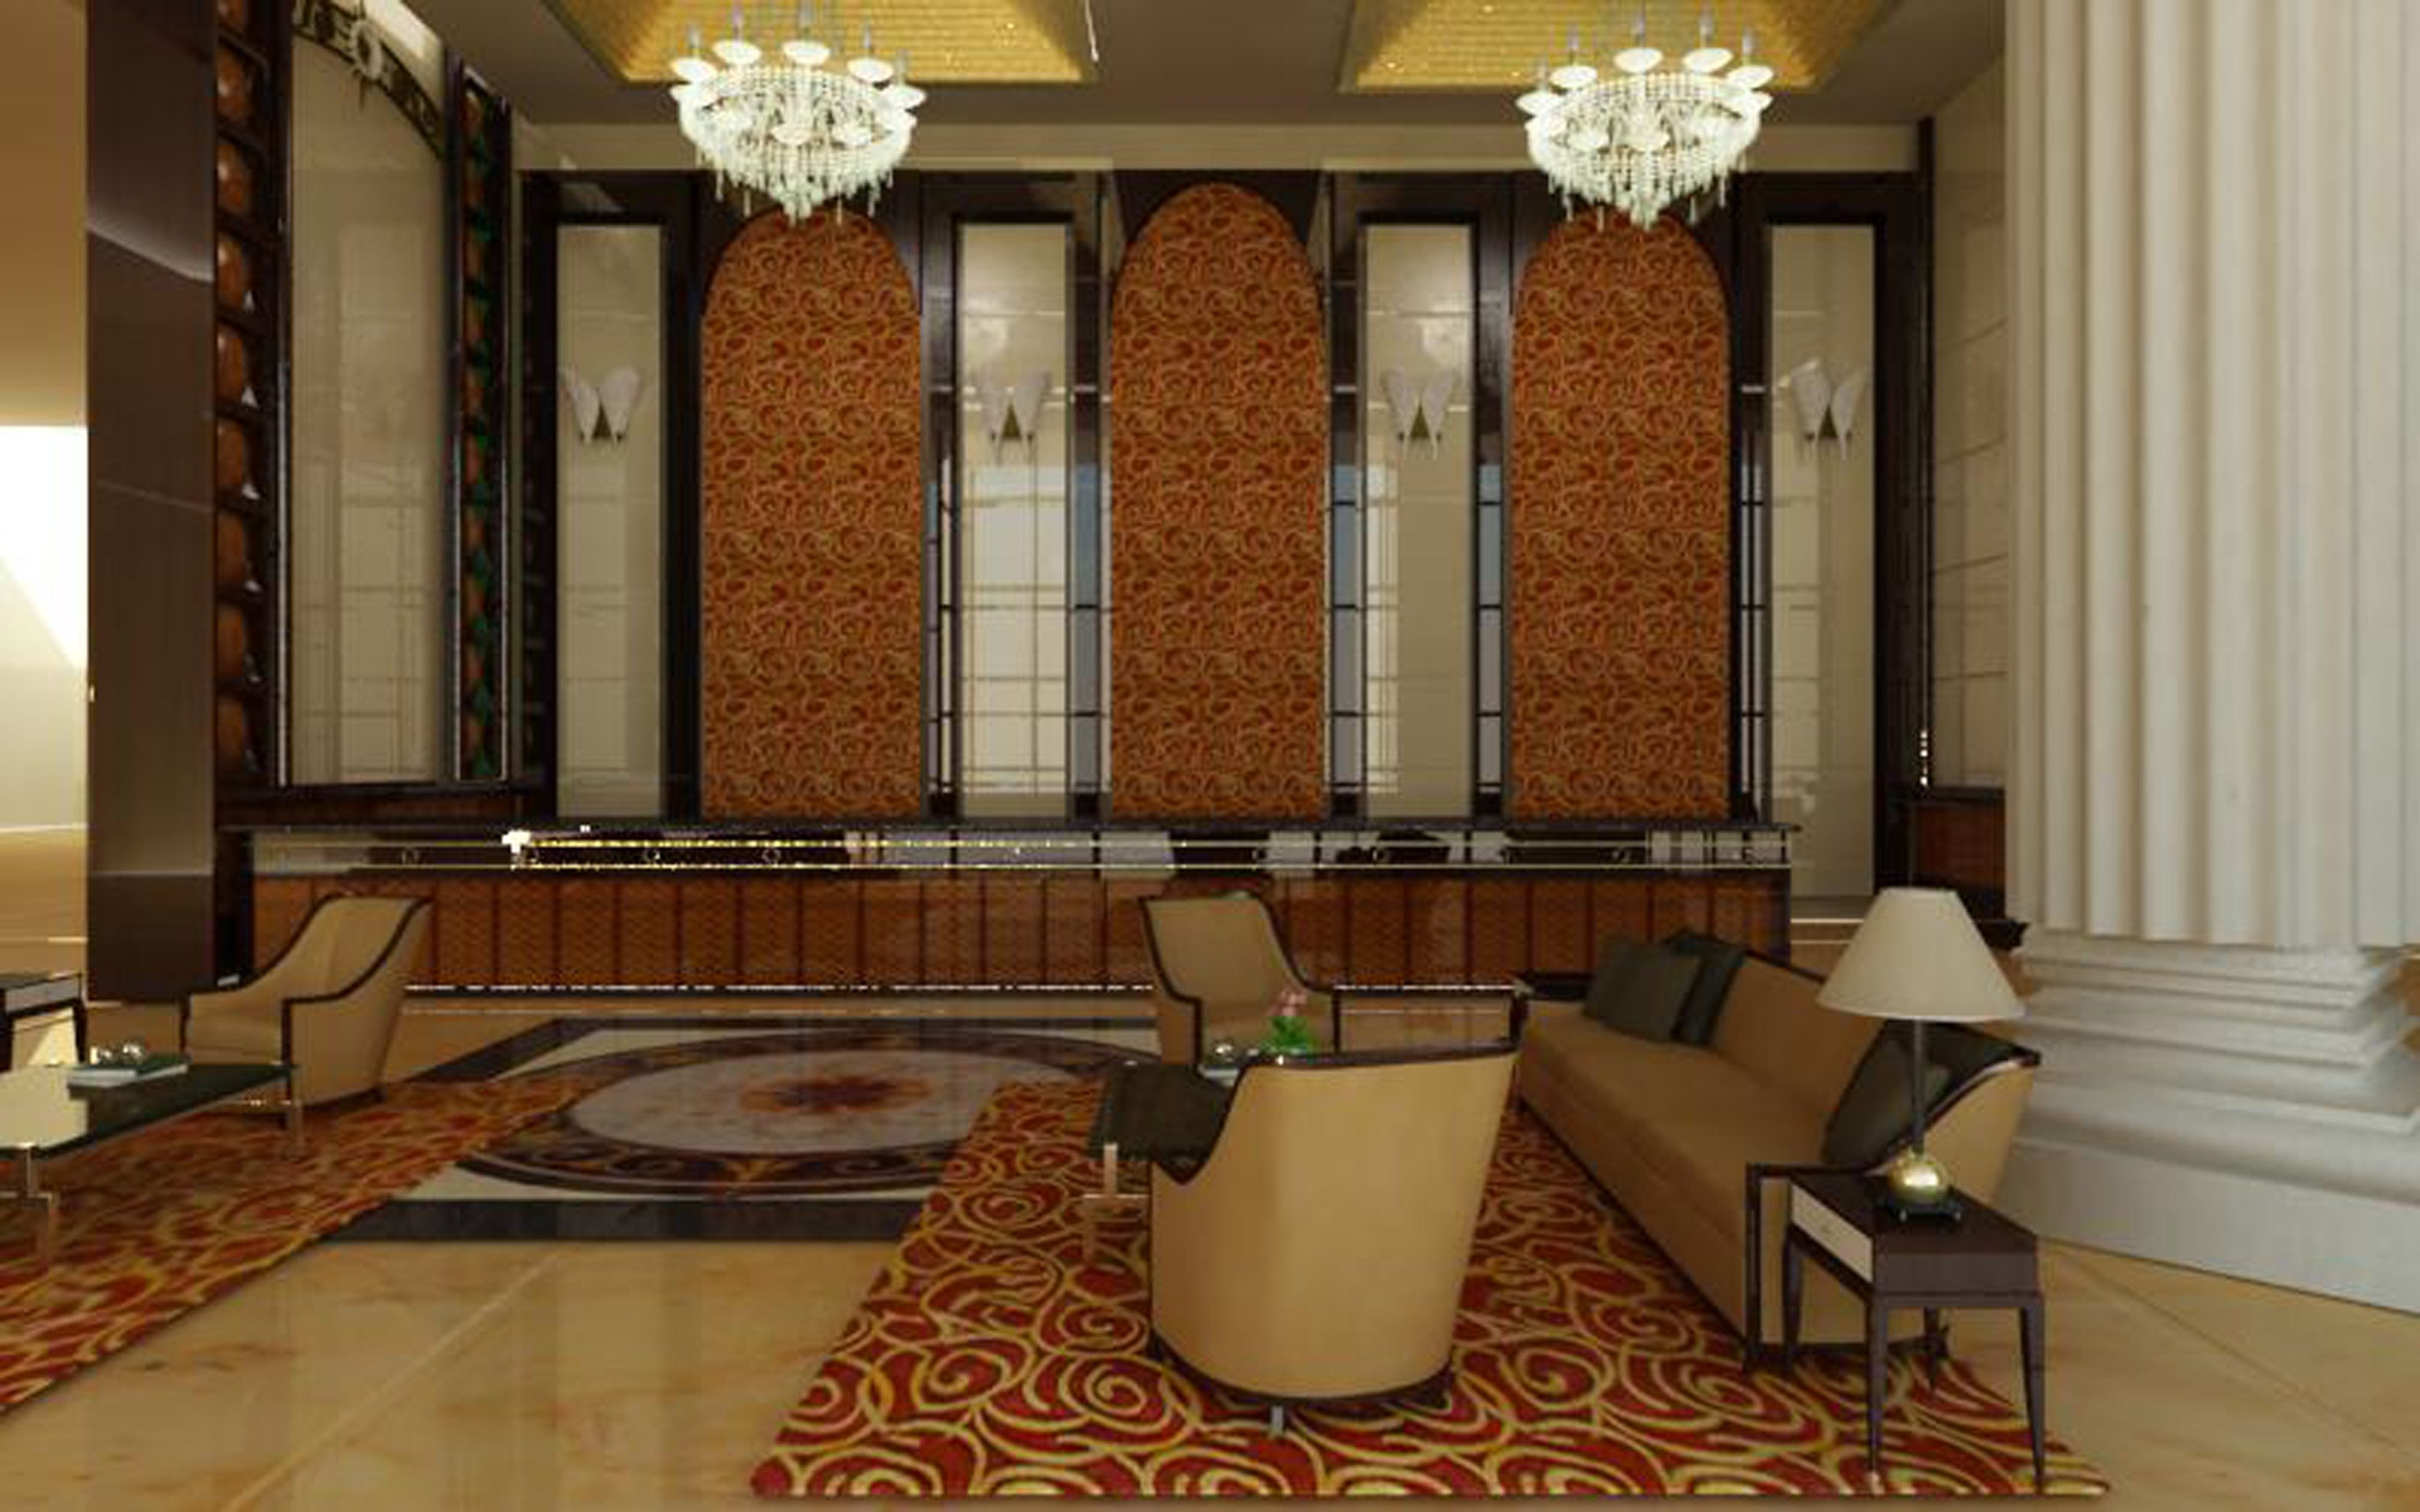 Art deco hotel in jakarta indonesia places id like to